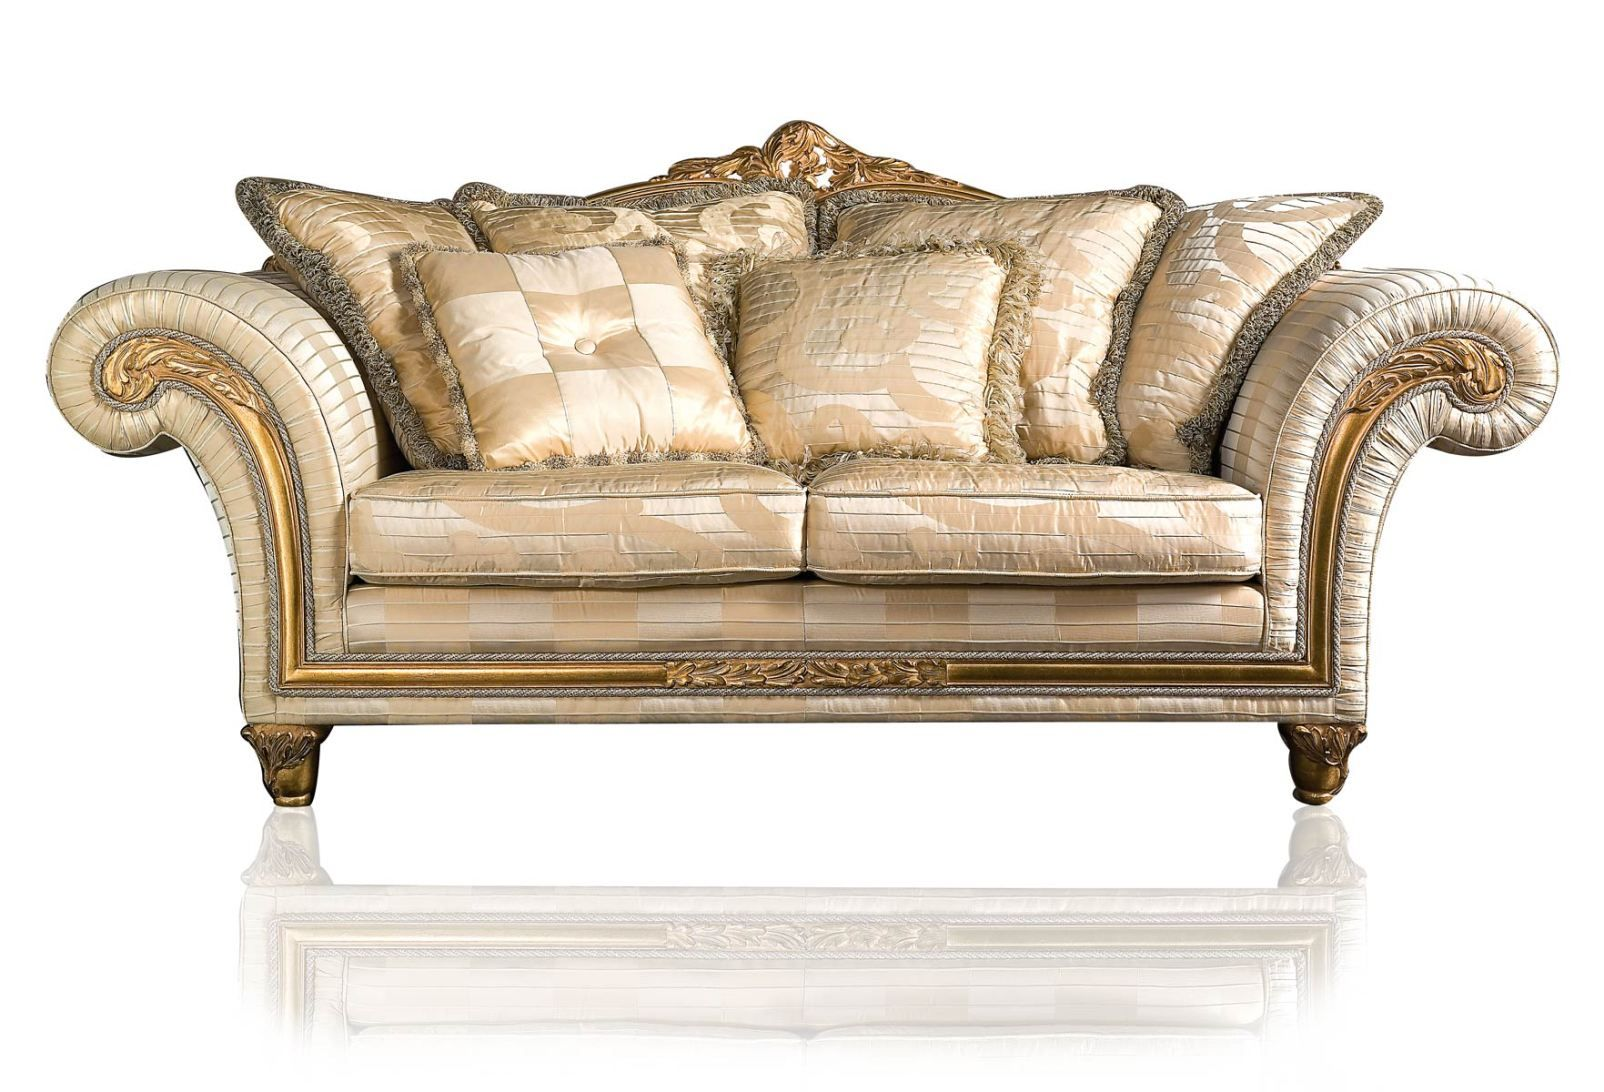 Sample Luxury Classic Sofa Design Gallery   Http://sectionalsofasale.net/